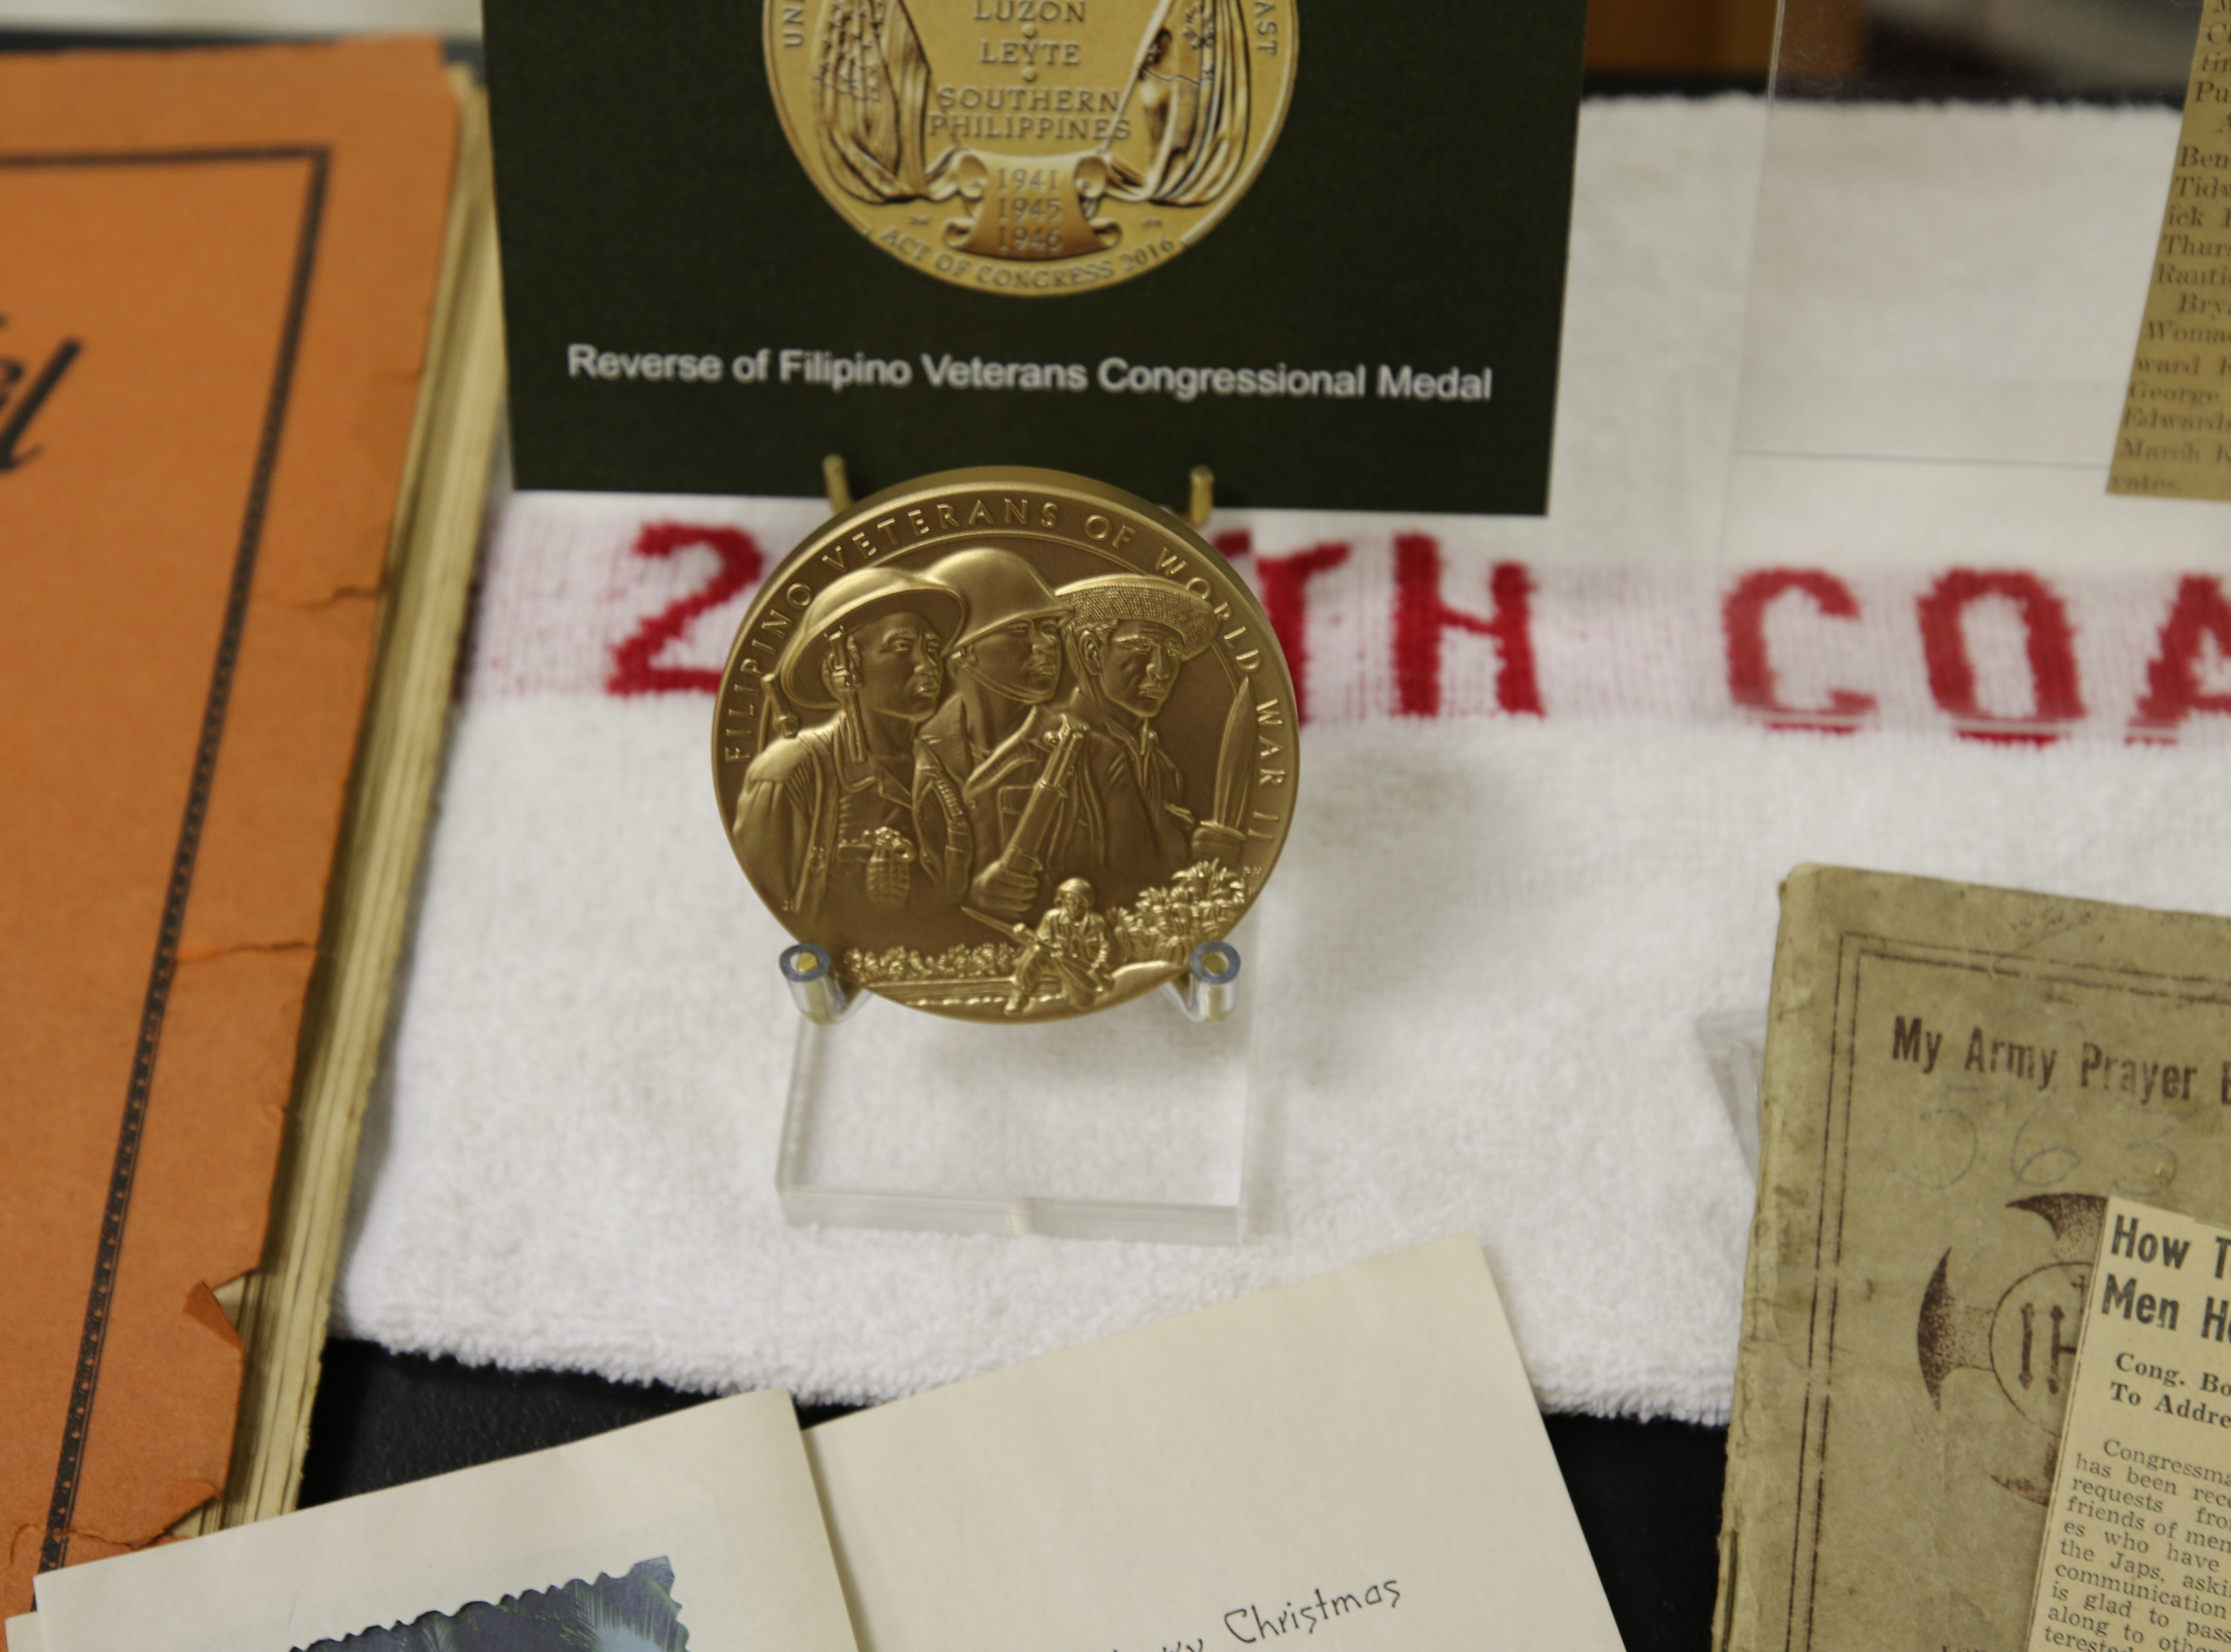 A replica of Charlie James' U.S. Congressional Gold Medal was on display April 9 at the Carlsbad Museum and Art Center. James' daughter Joanna Sieberg applied for the medal and received it on behalf of her late father, a Bataan Death March survivor.